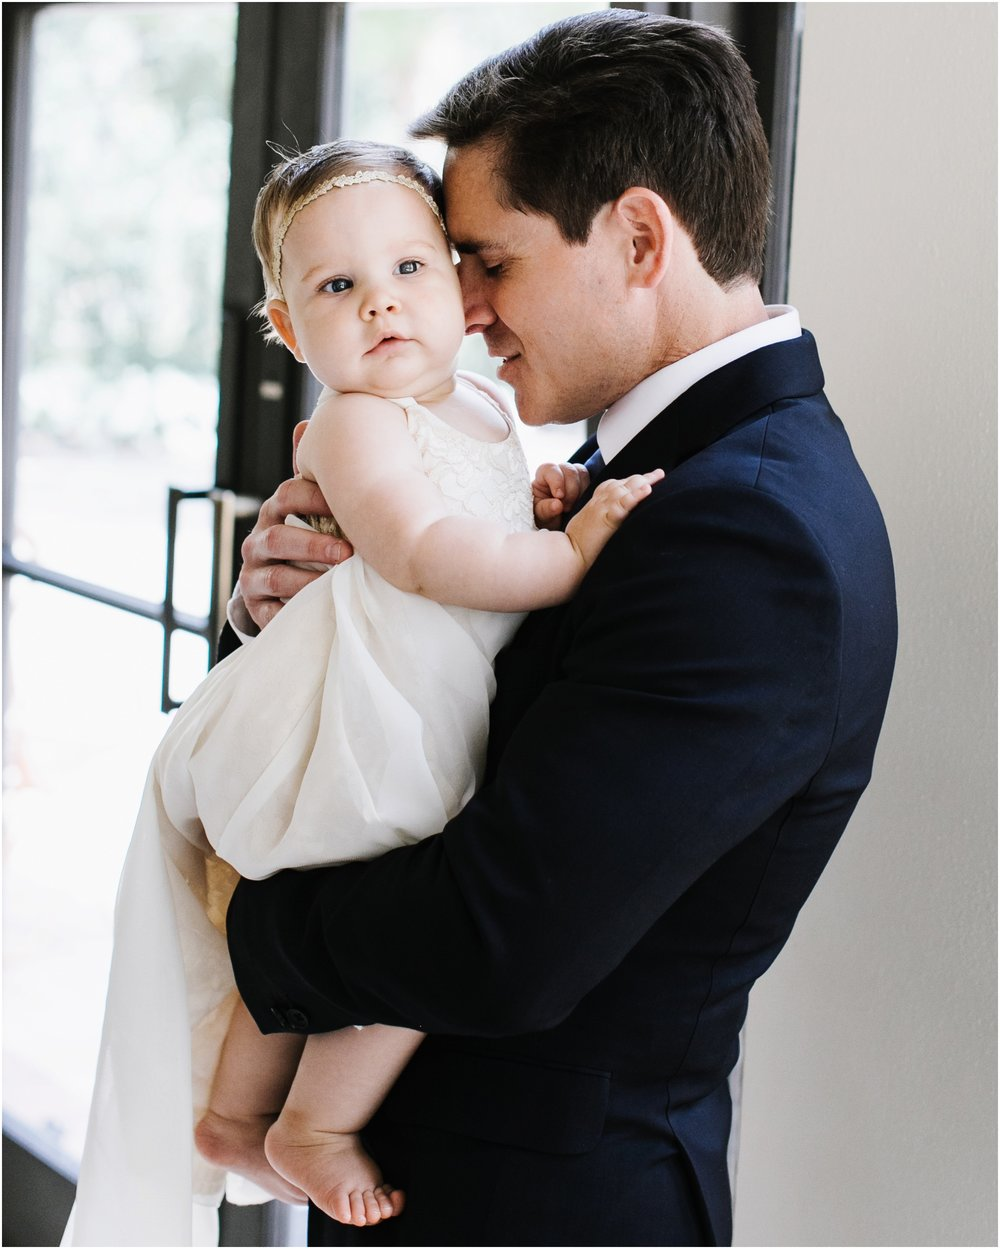 Mire-Blessing-Baptism-Family-2018-June-8896_quaint-and-whim-lifestyle-photographer-louisiana-.jpg